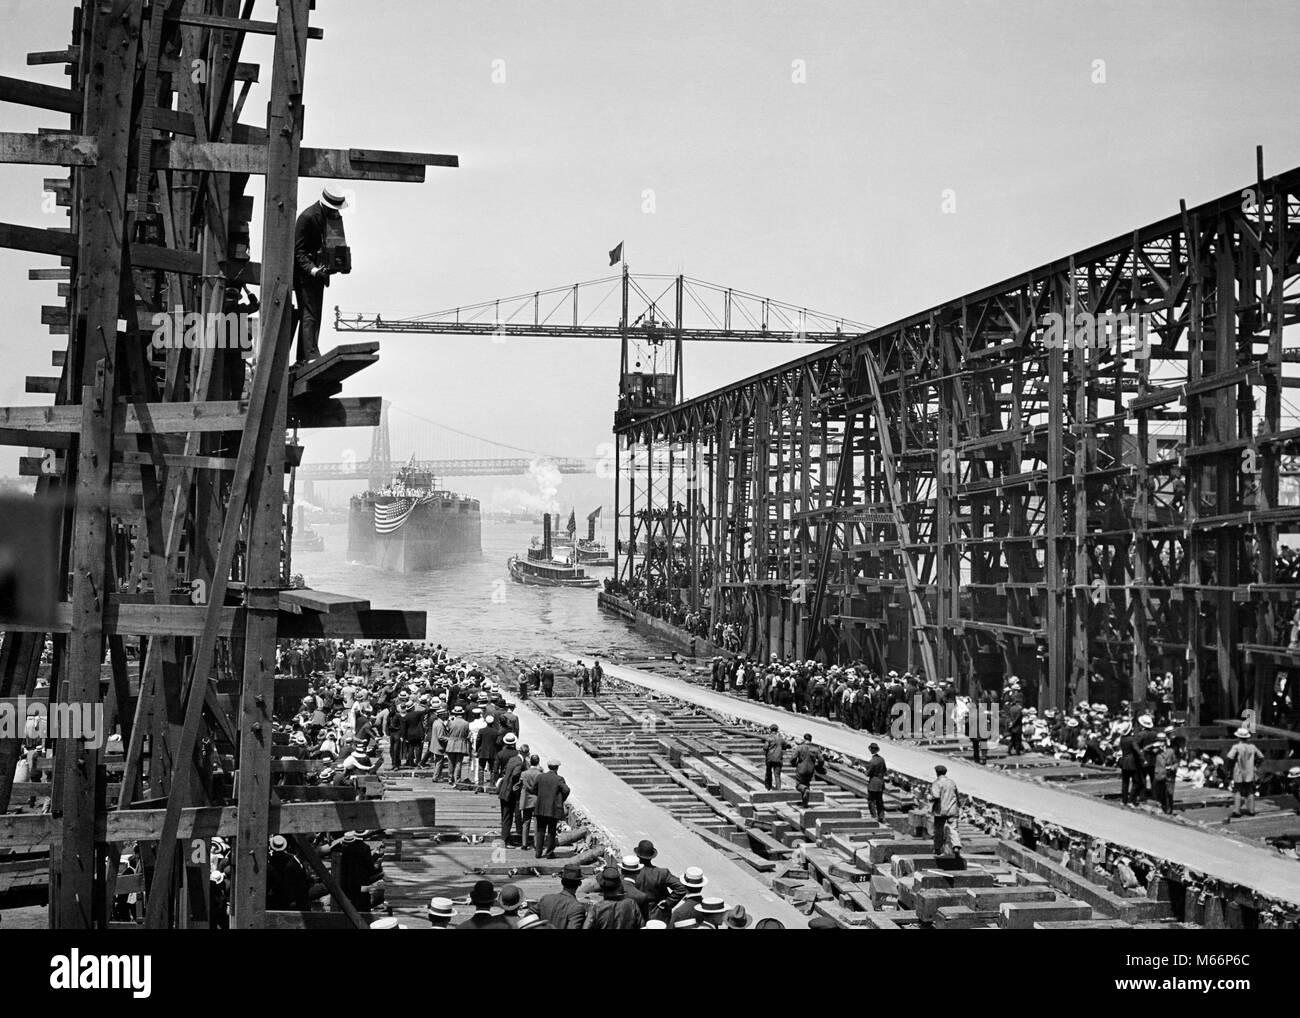 1900s JUNE 19 1915 LAUNCHING OF BATTLESHIP ARIZONA FROM BROOKLYN NAVY YARD INTO EAST RIVER WITH WAITING TUG BOATS - Stock Image